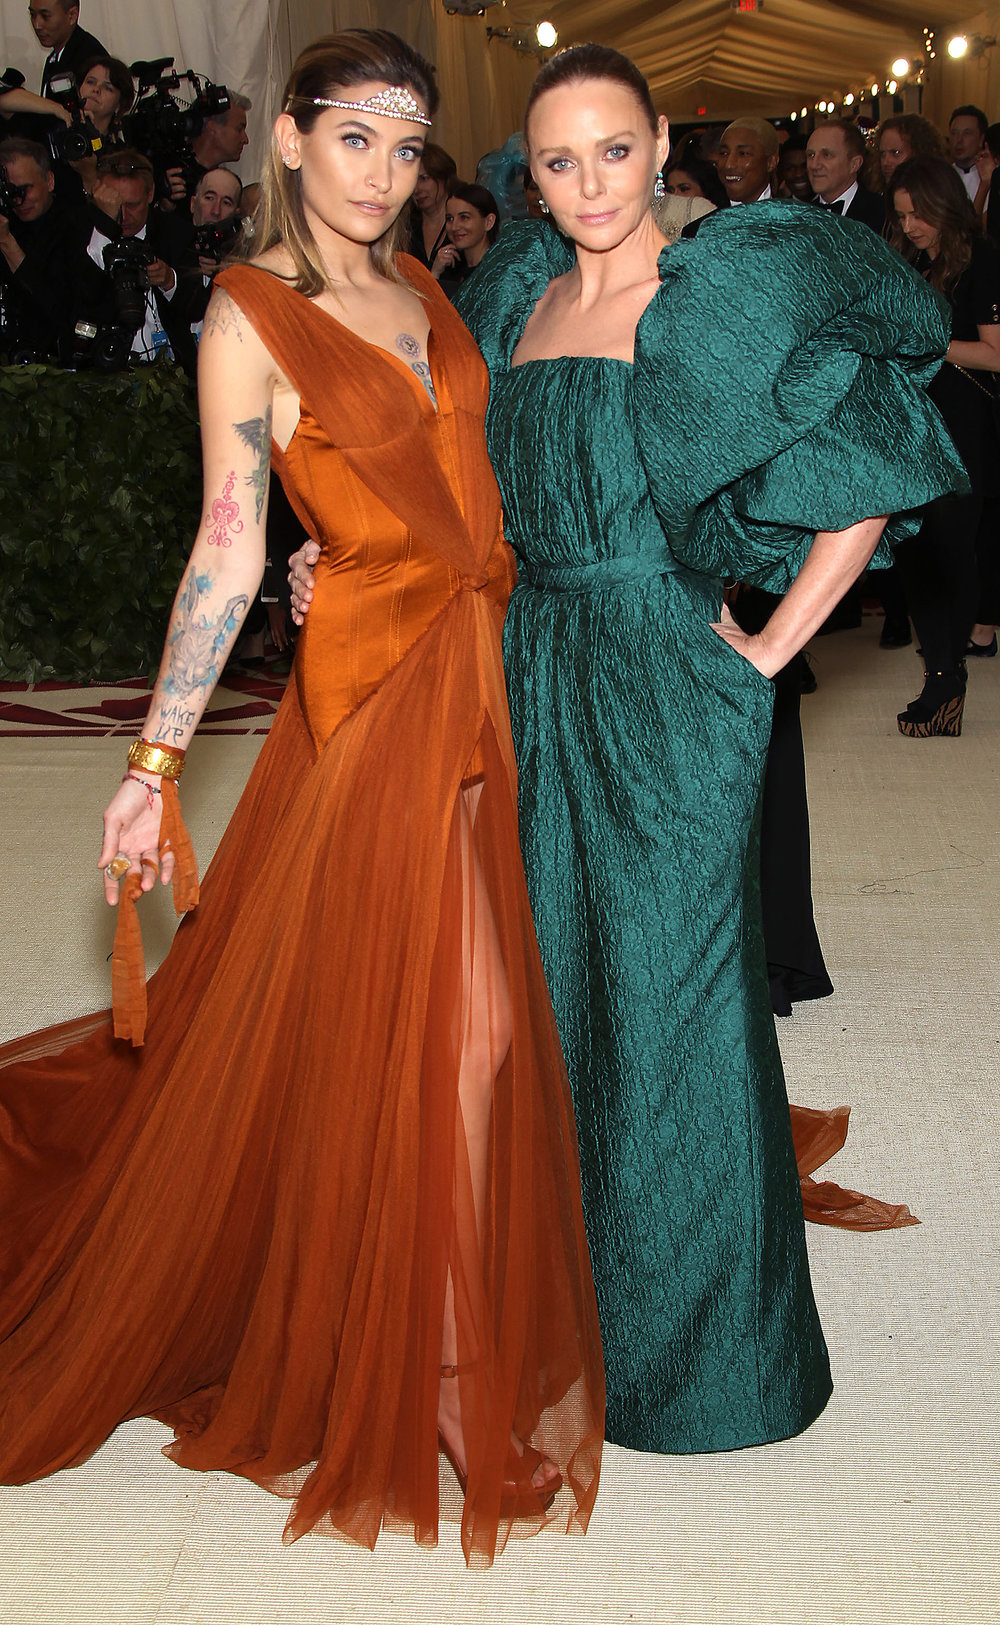 107. PARIS JACKSON & STELLA MCCARTNEY